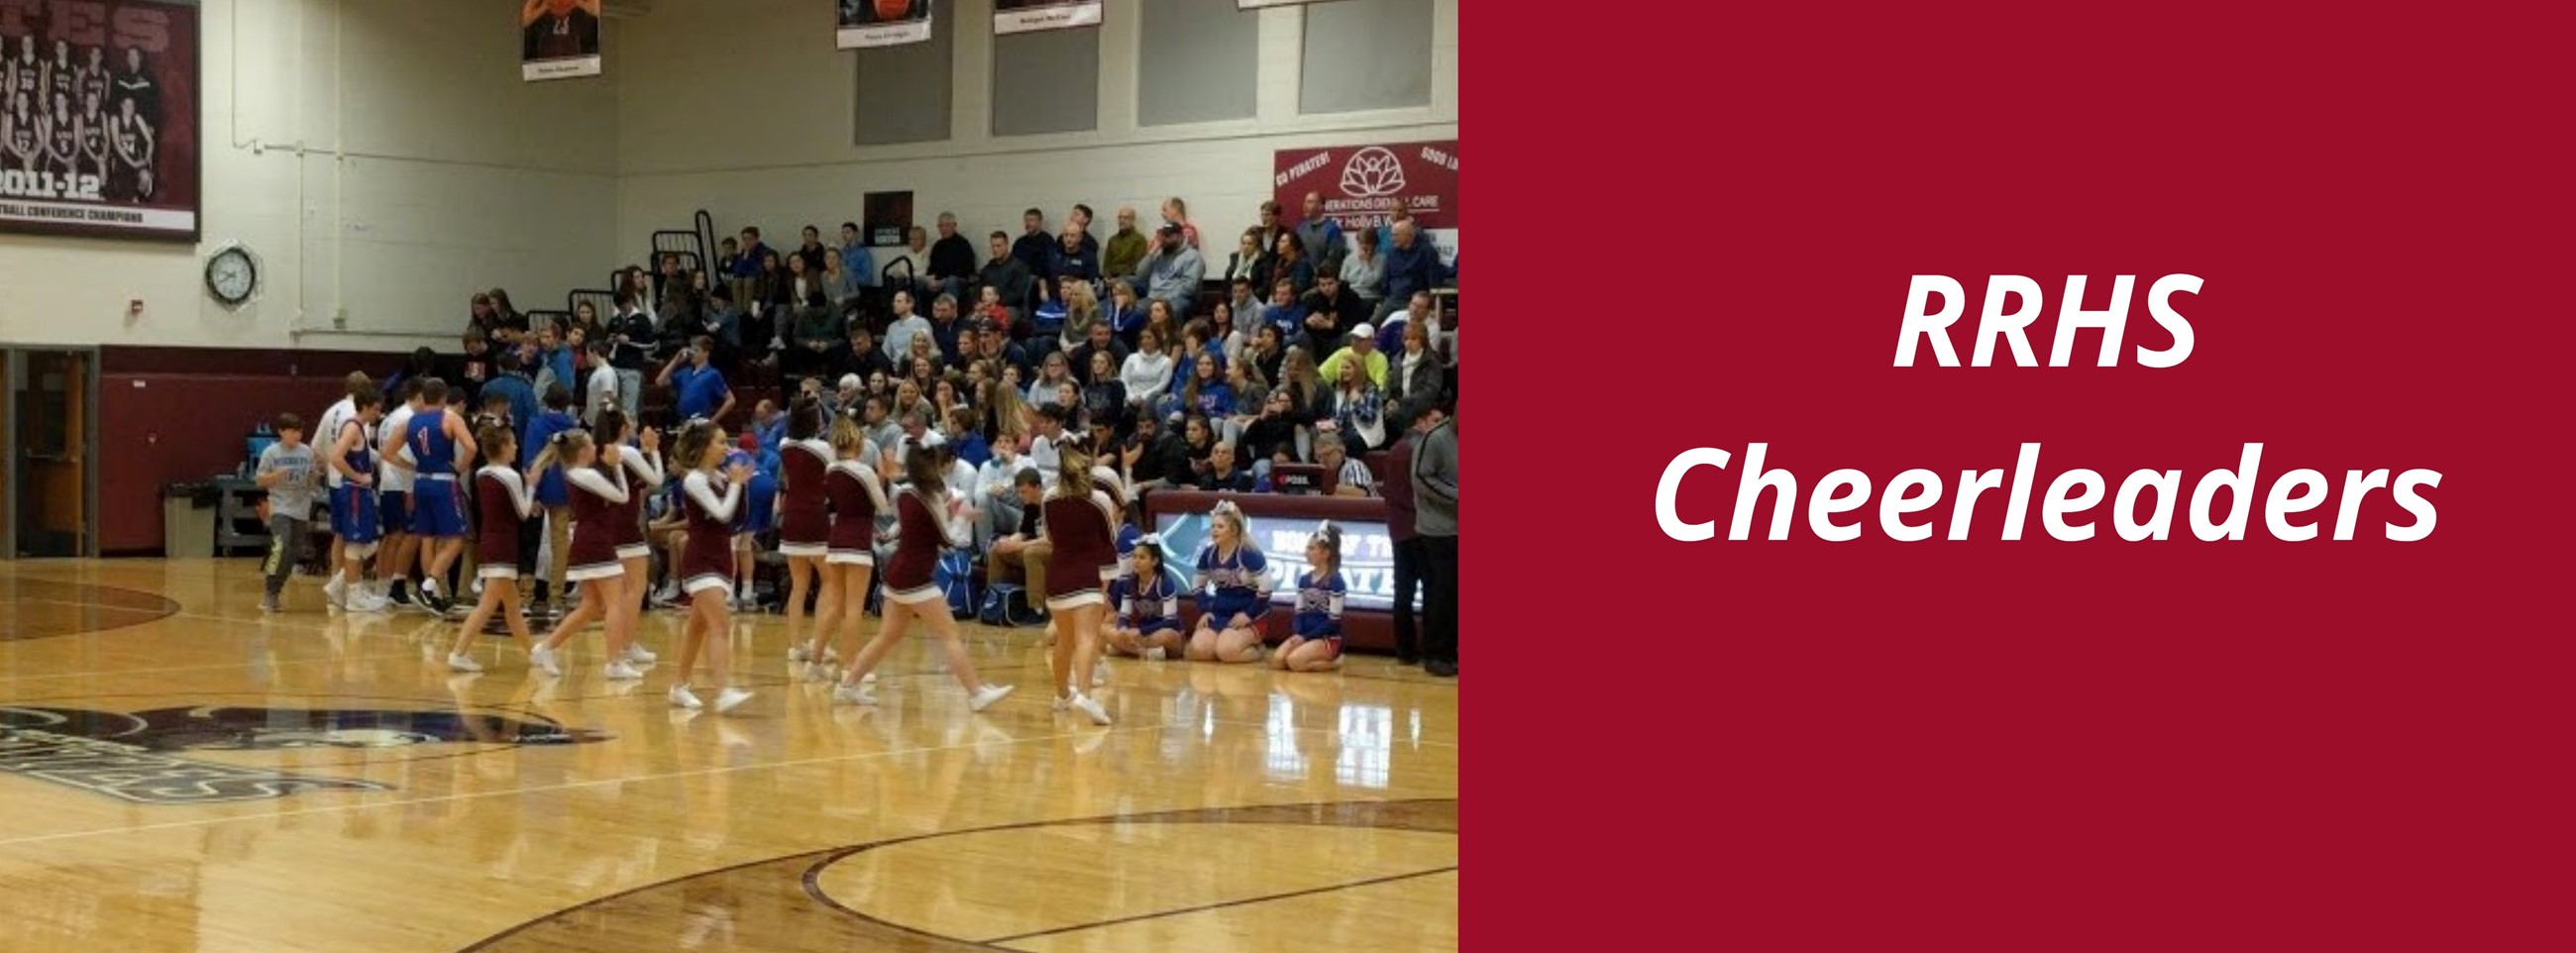 RRHS Cheerleaders doing a cheer on the gym court